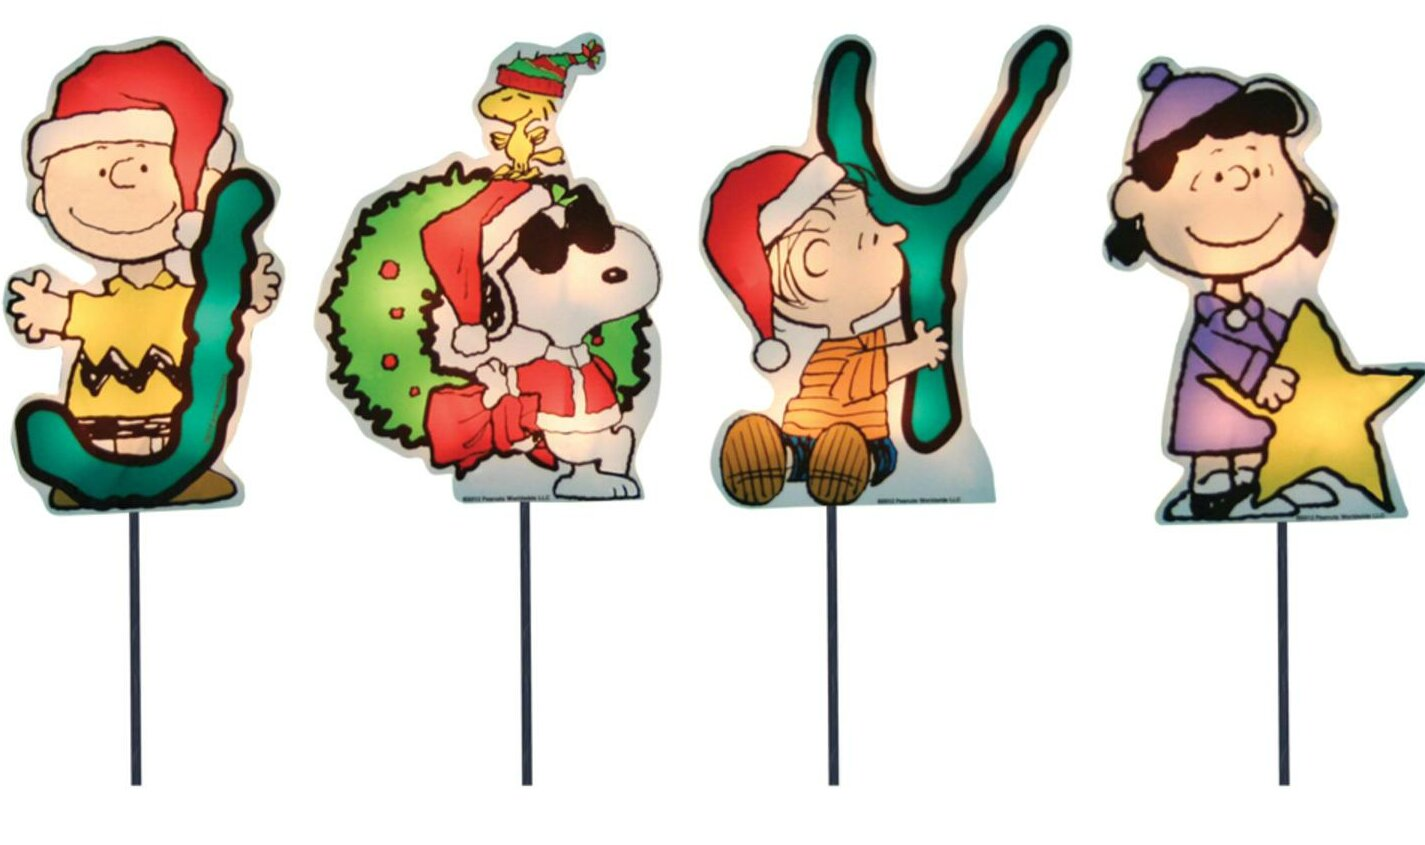 Snoopy Christmas Images.Joy Peanuts And Snoopy Christmas Pathway Lighted Display